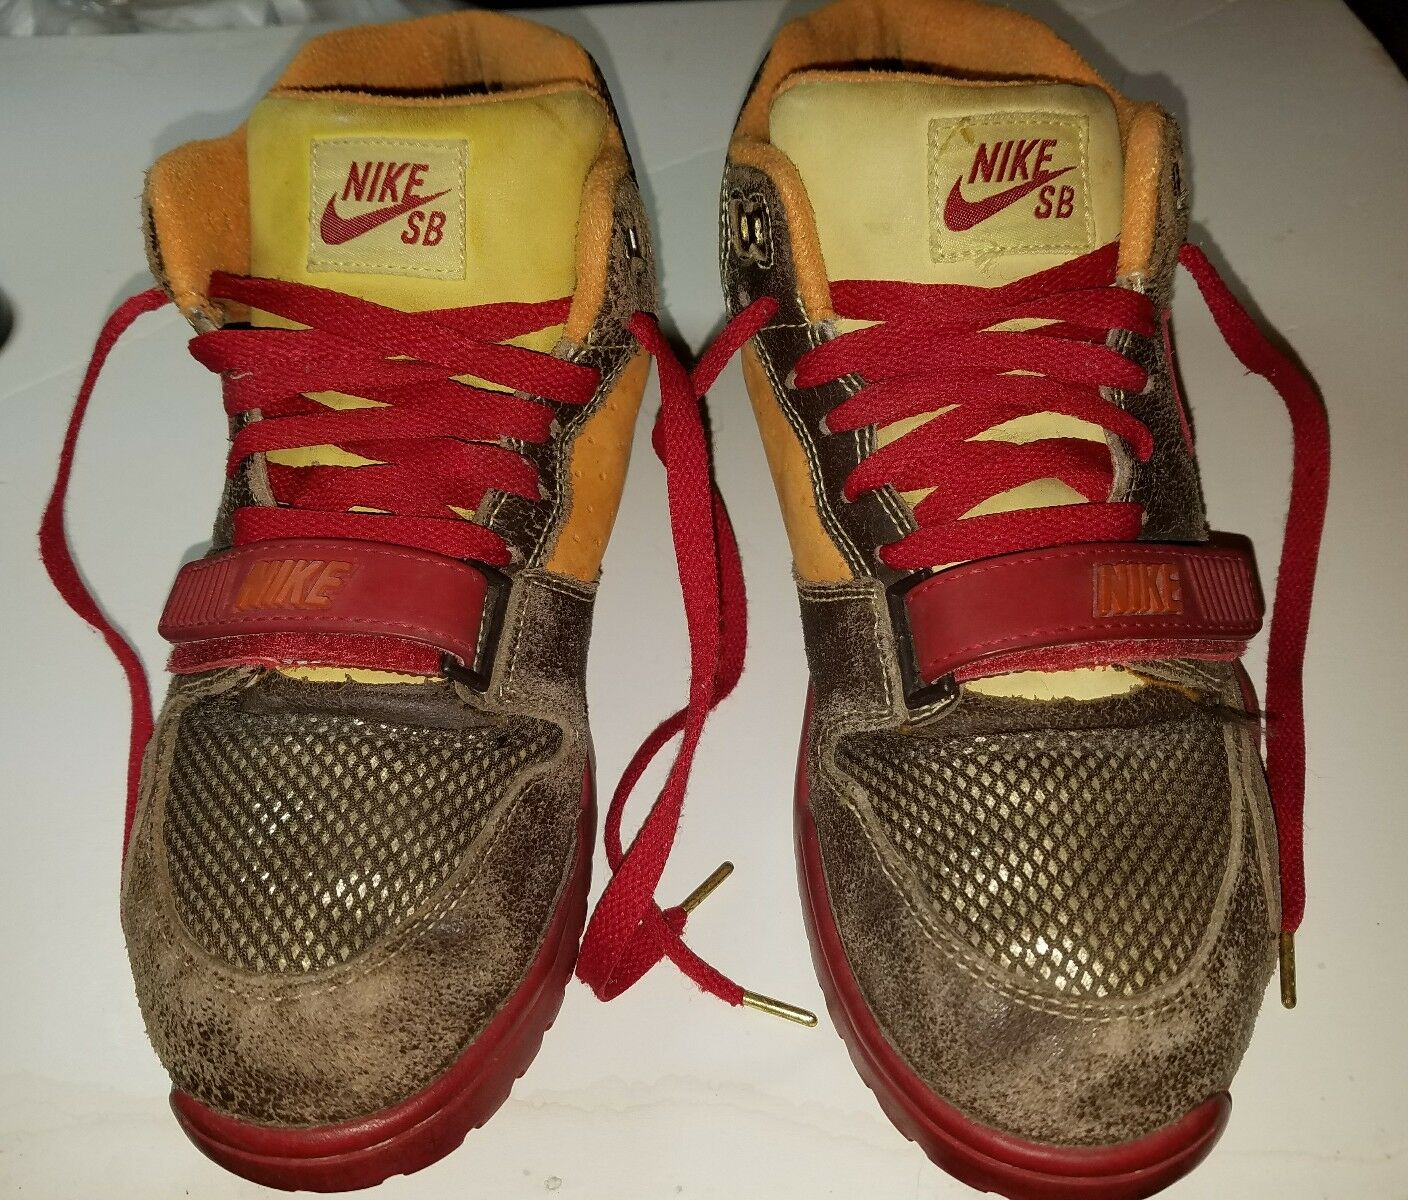 NIKE AIR TRAINER 1 SB MID gold DIGGER QS SIZE 9.5SAN FRANSISCO 49ERS COLORWAY